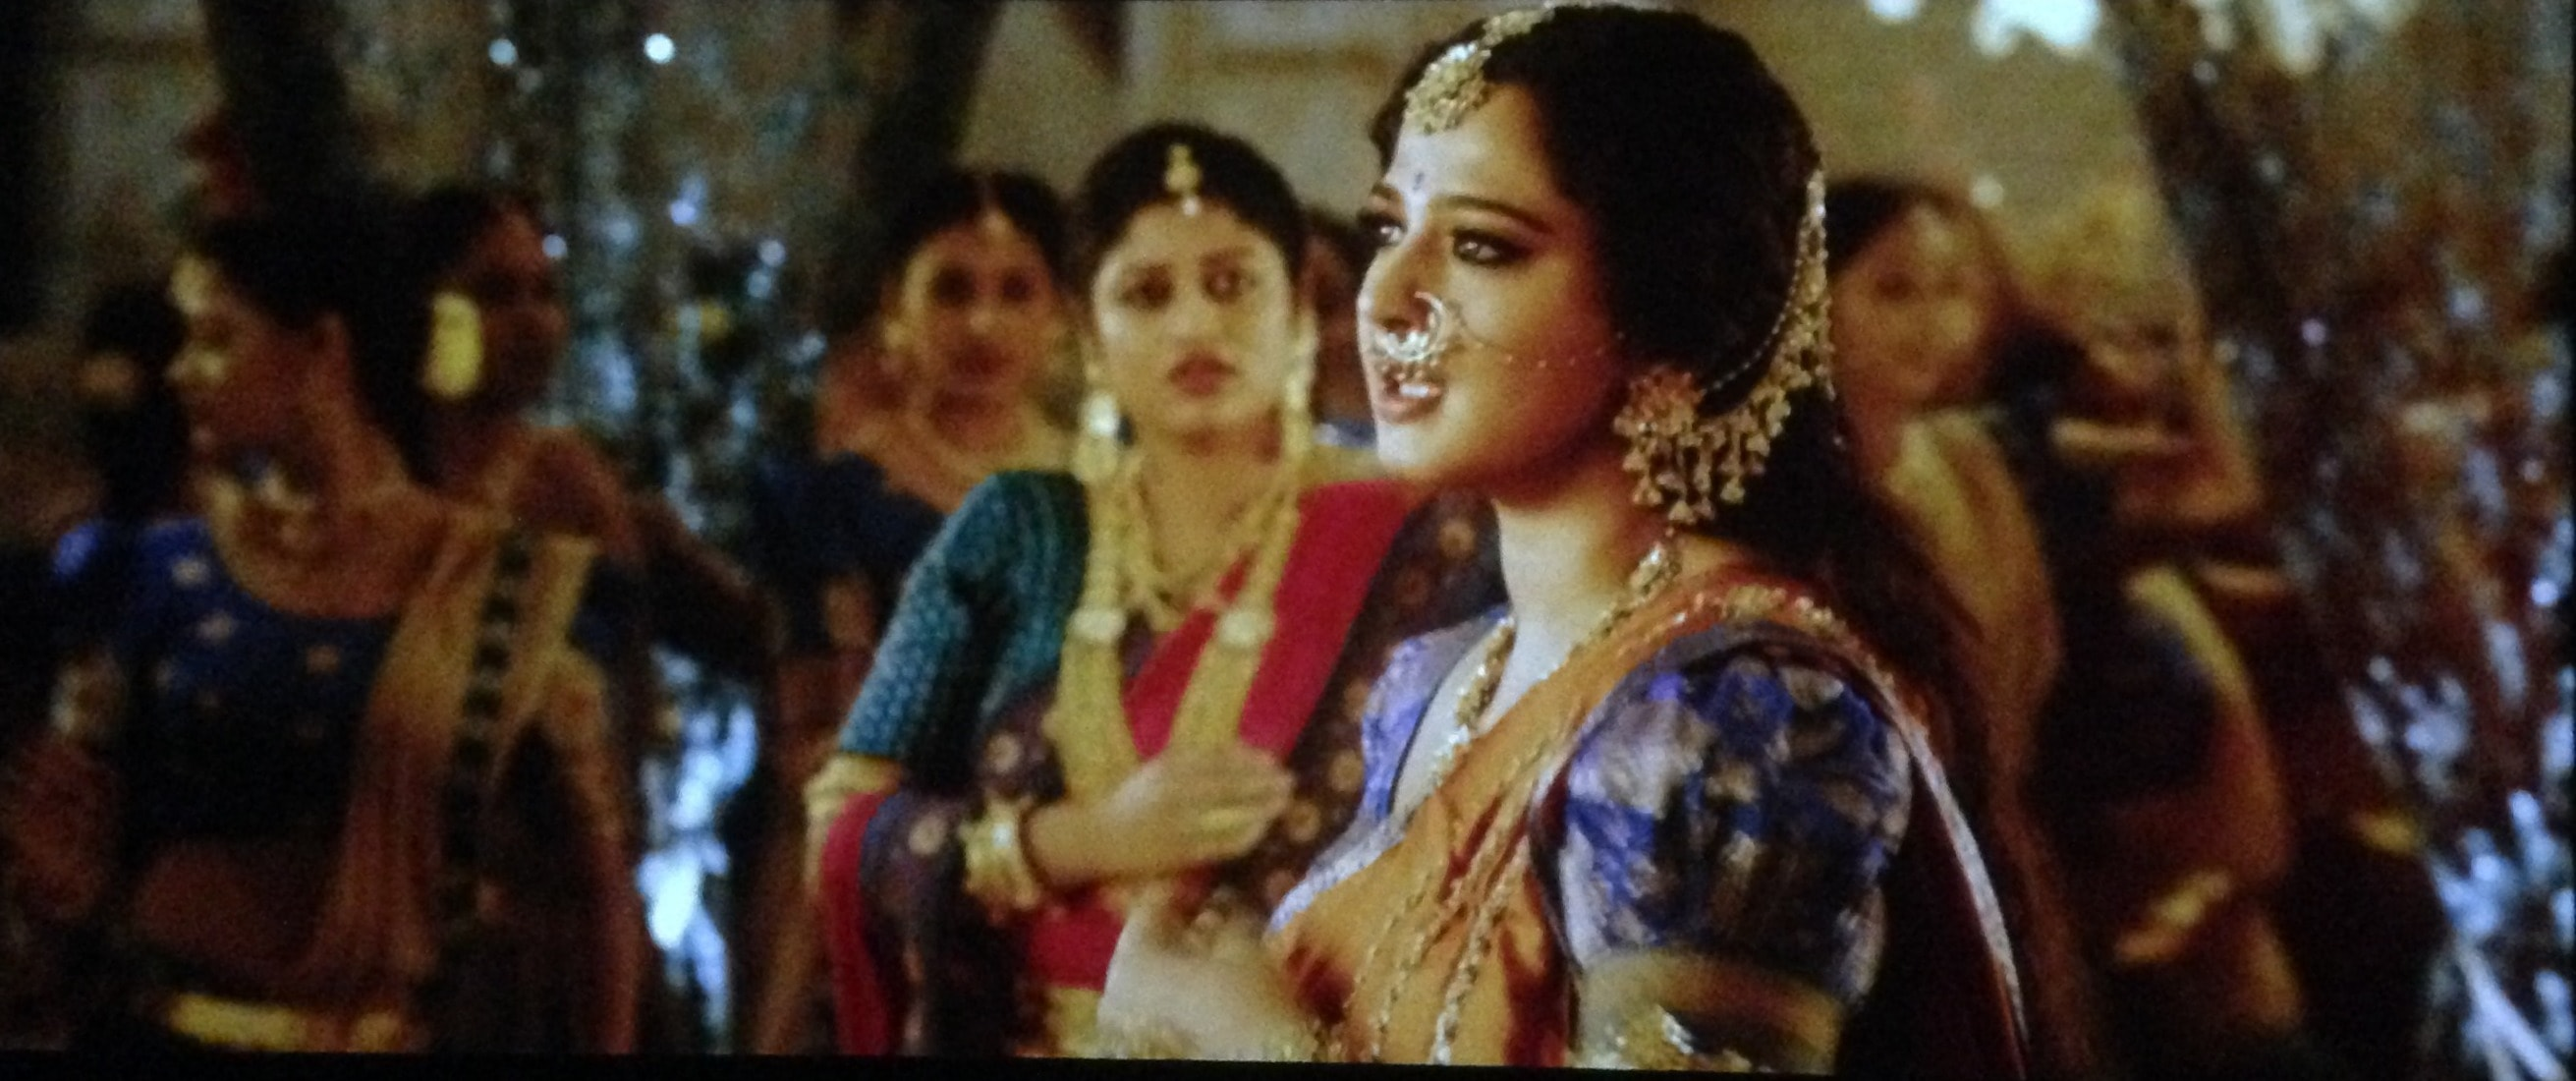 Anushka Shetty in bahubali 2 The conclusion, Anushka shetty blouse designs in bahubali 2